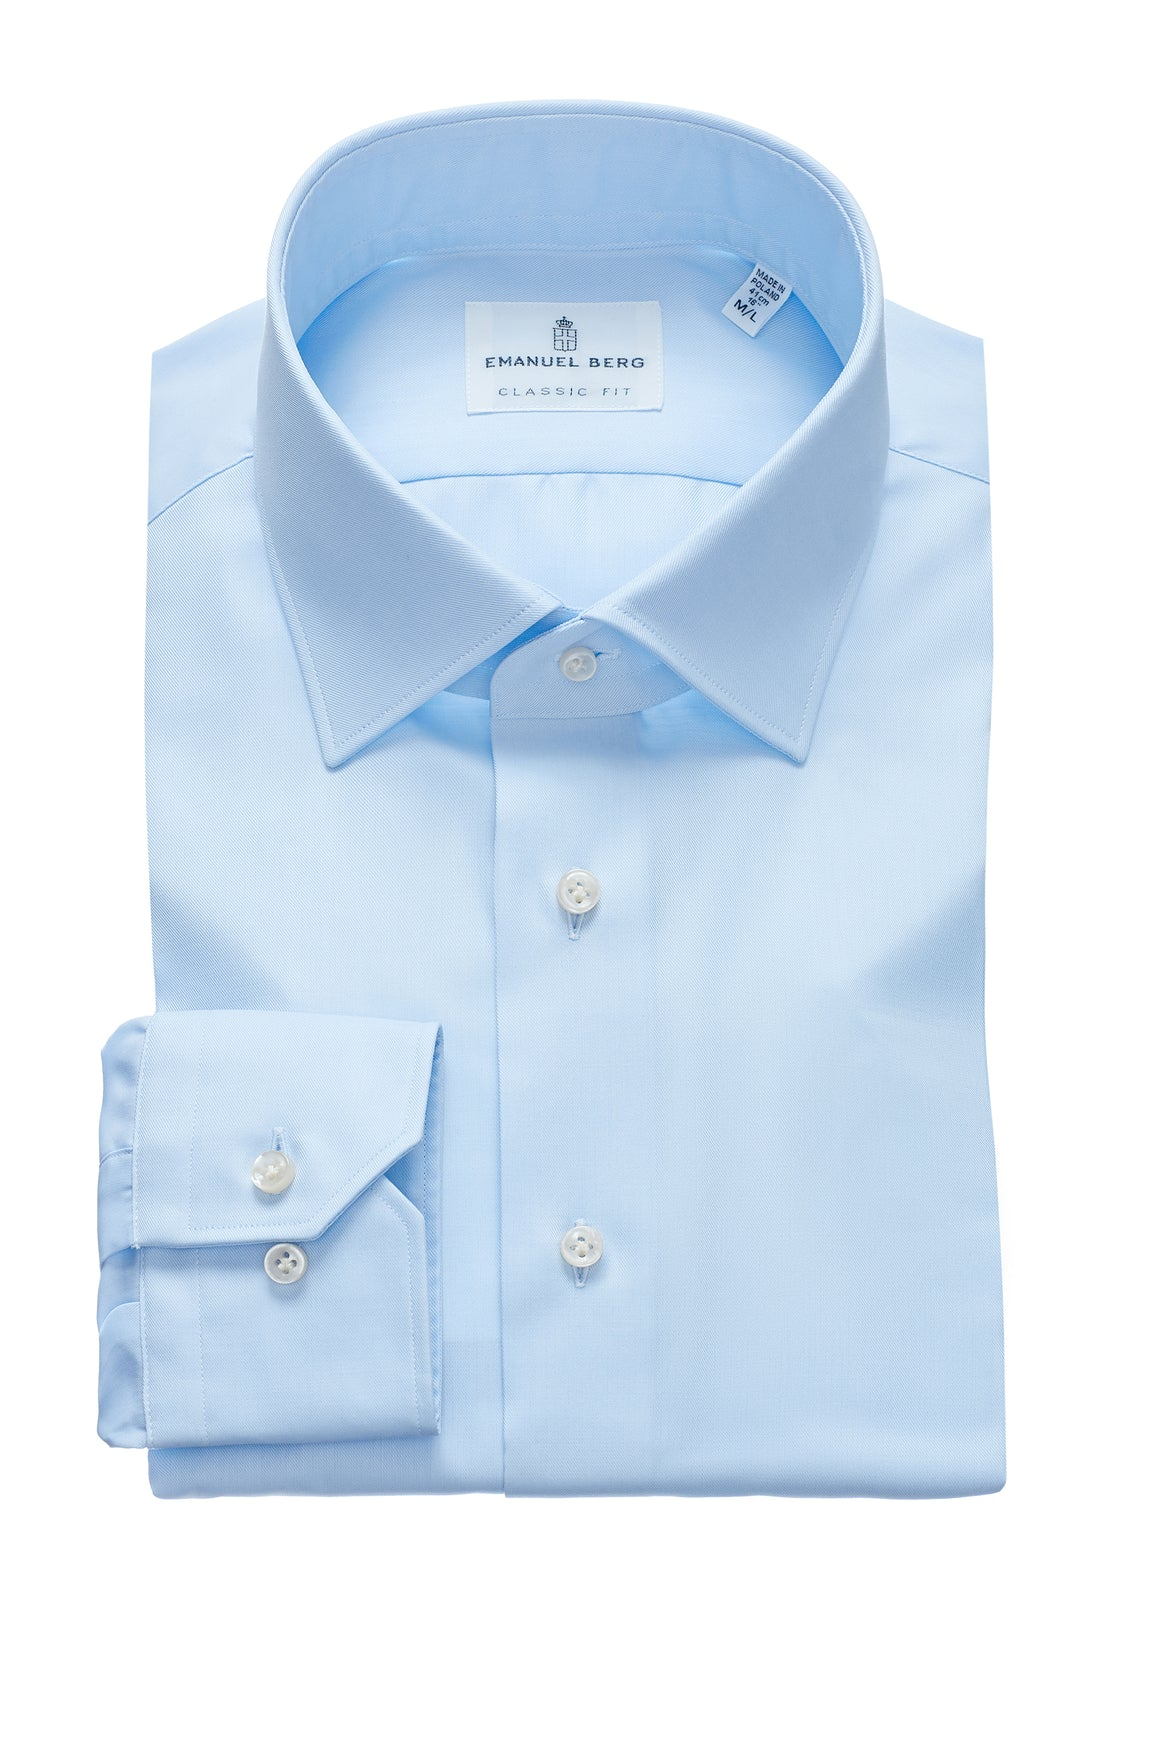 Mr. Crown Classic Fit Dress Shirt - Blue